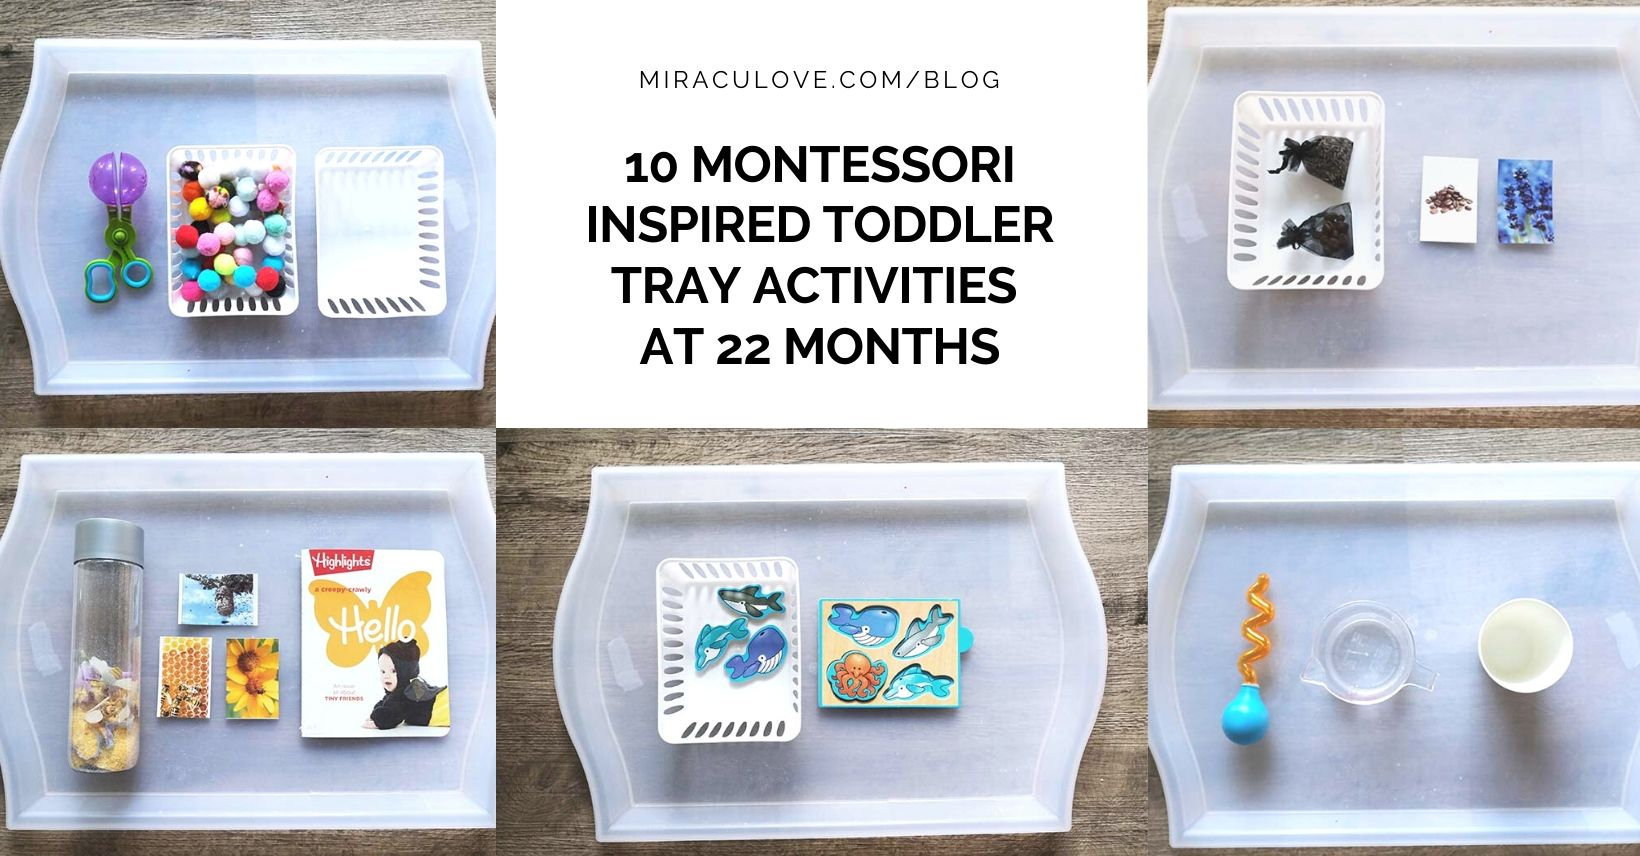 10+ Montessori Inspired Toddler Tray Activities at 22 Months